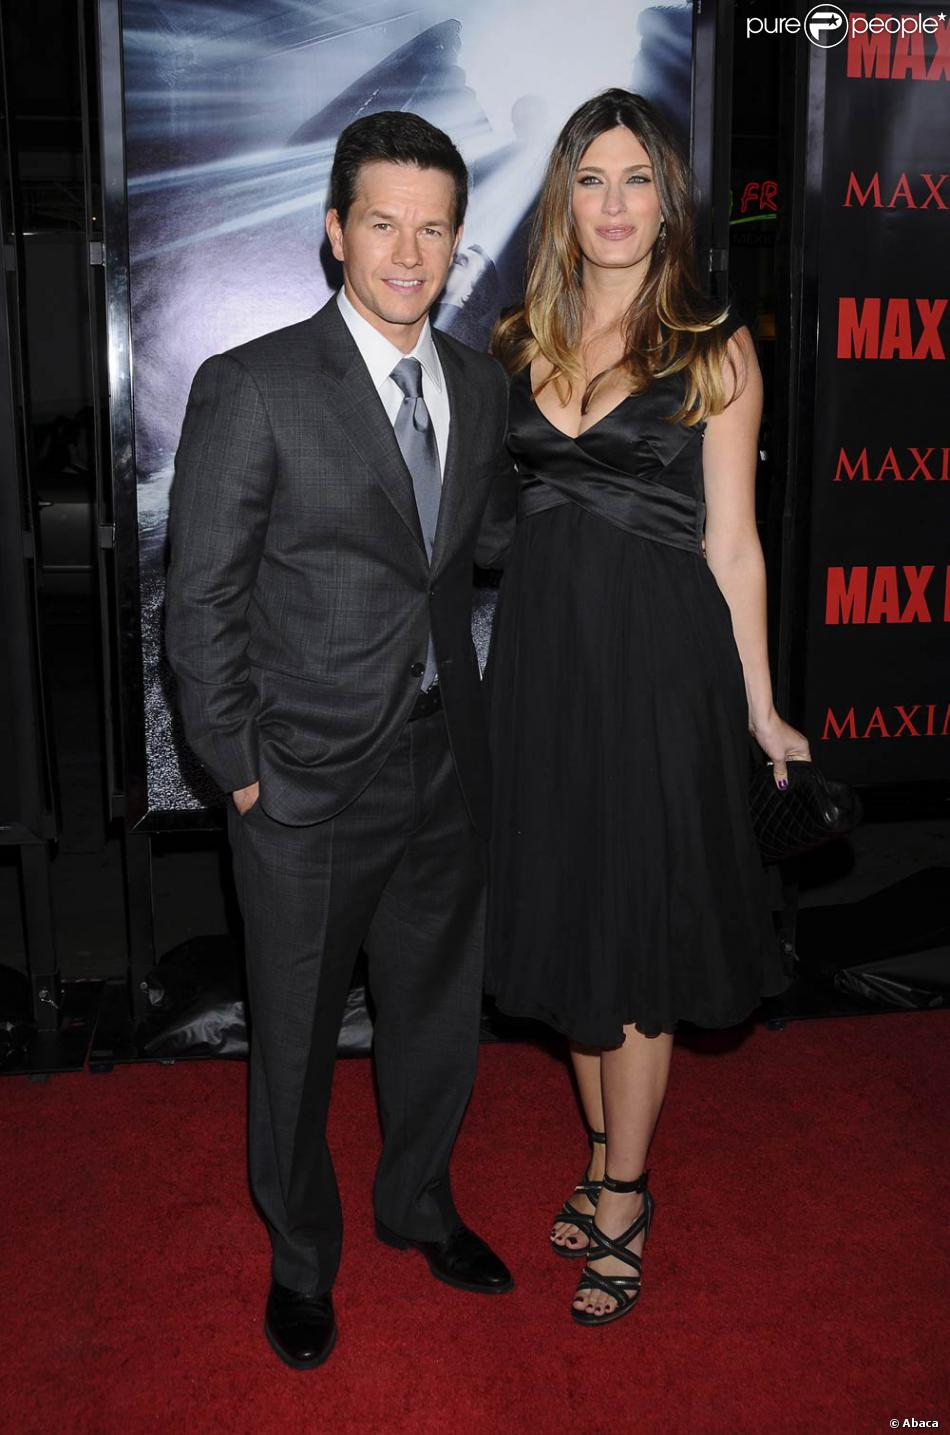 mark wahlberg et rhea durham un couple joliment assorti. Black Bedroom Furniture Sets. Home Design Ideas